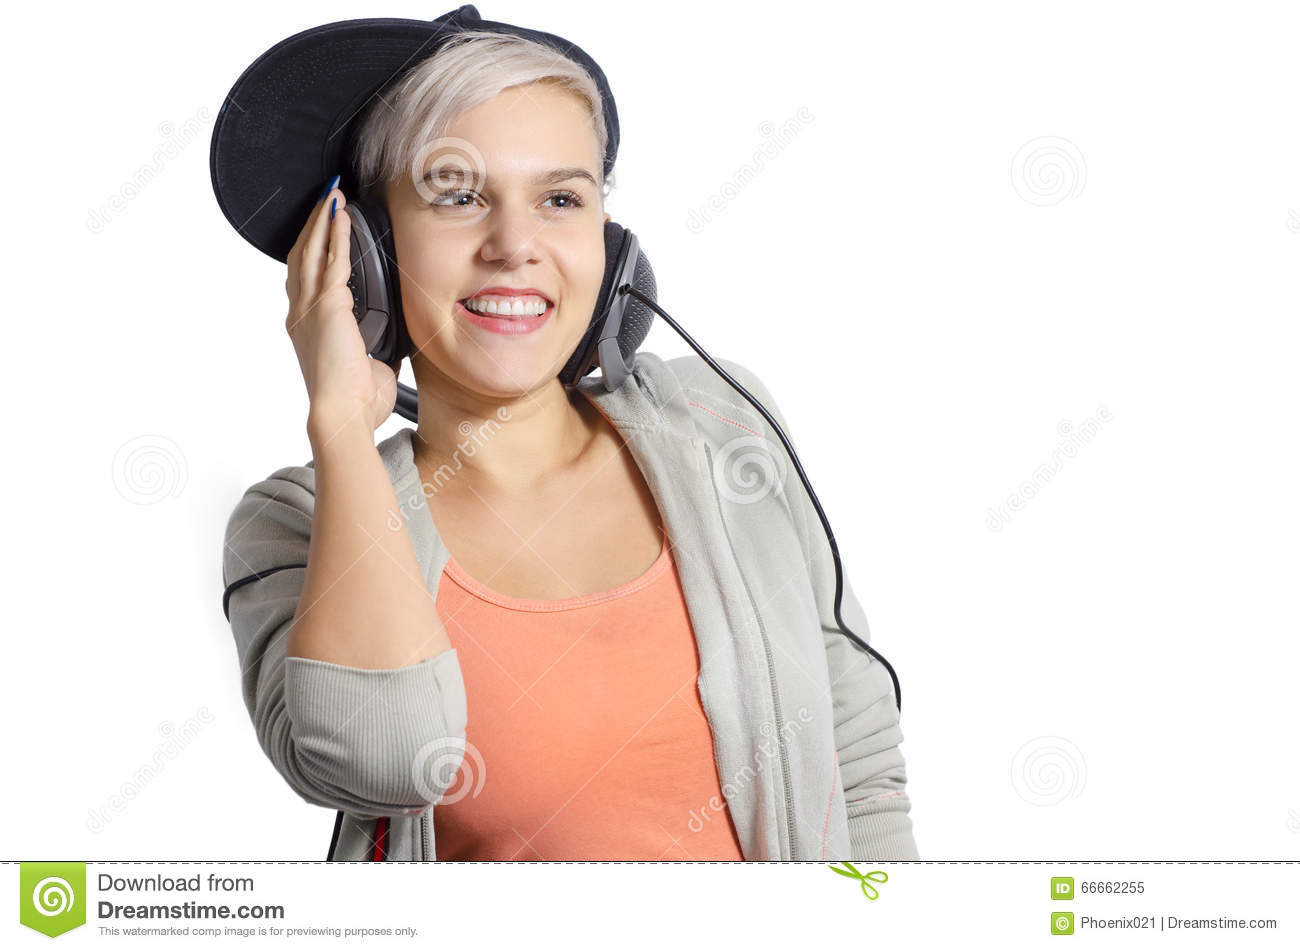 Cute young girl listening to music on headphones